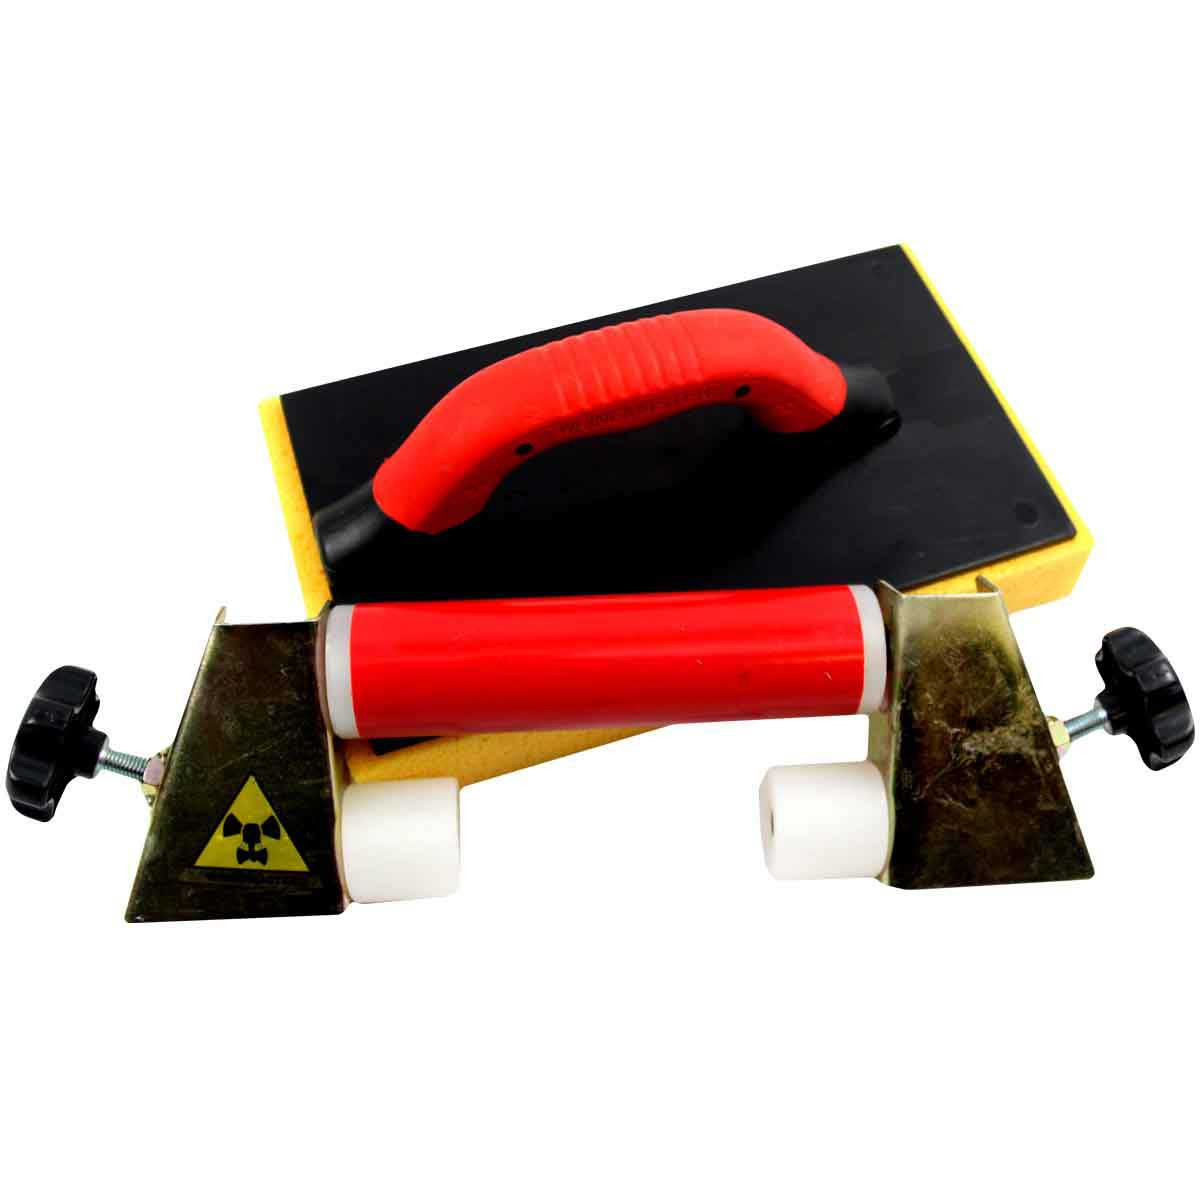 Wringmaster Grout clean-up System full kit image 4